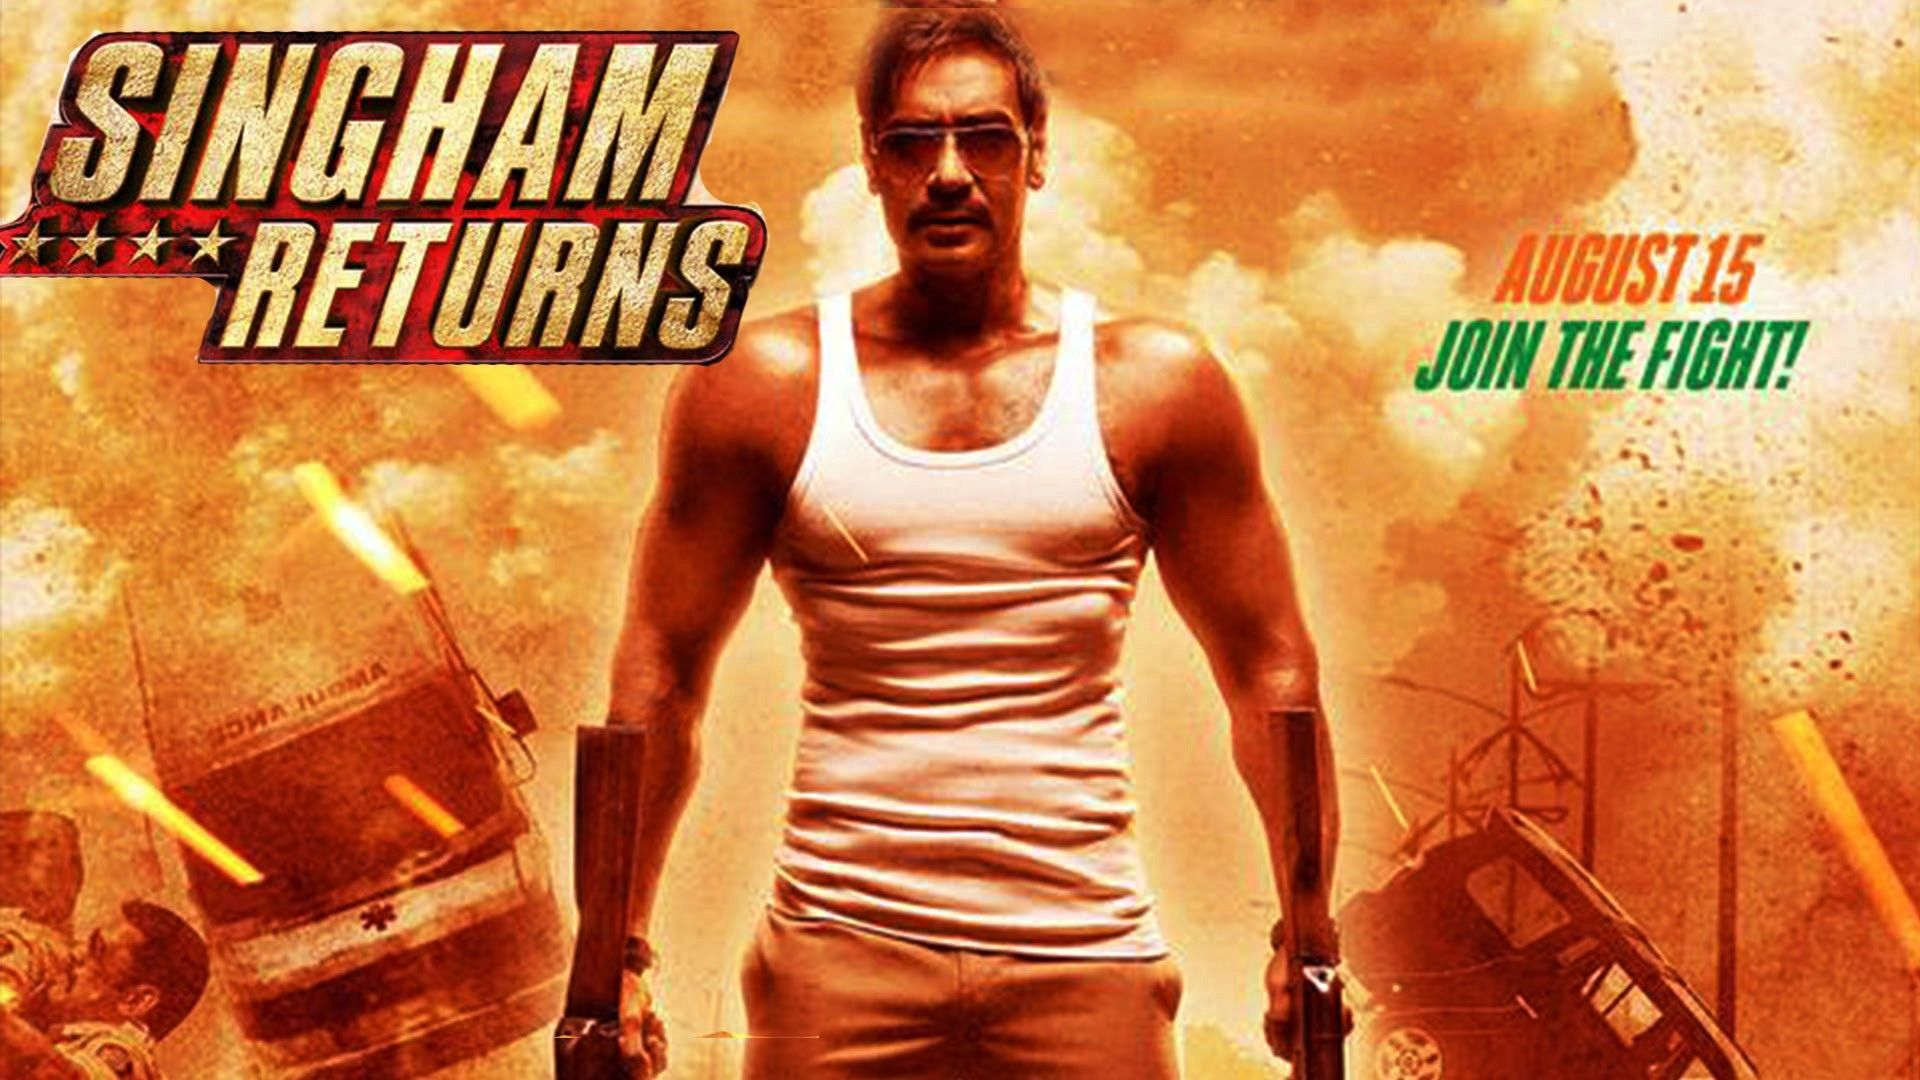 Watch Singham Returns online free with english subtitle